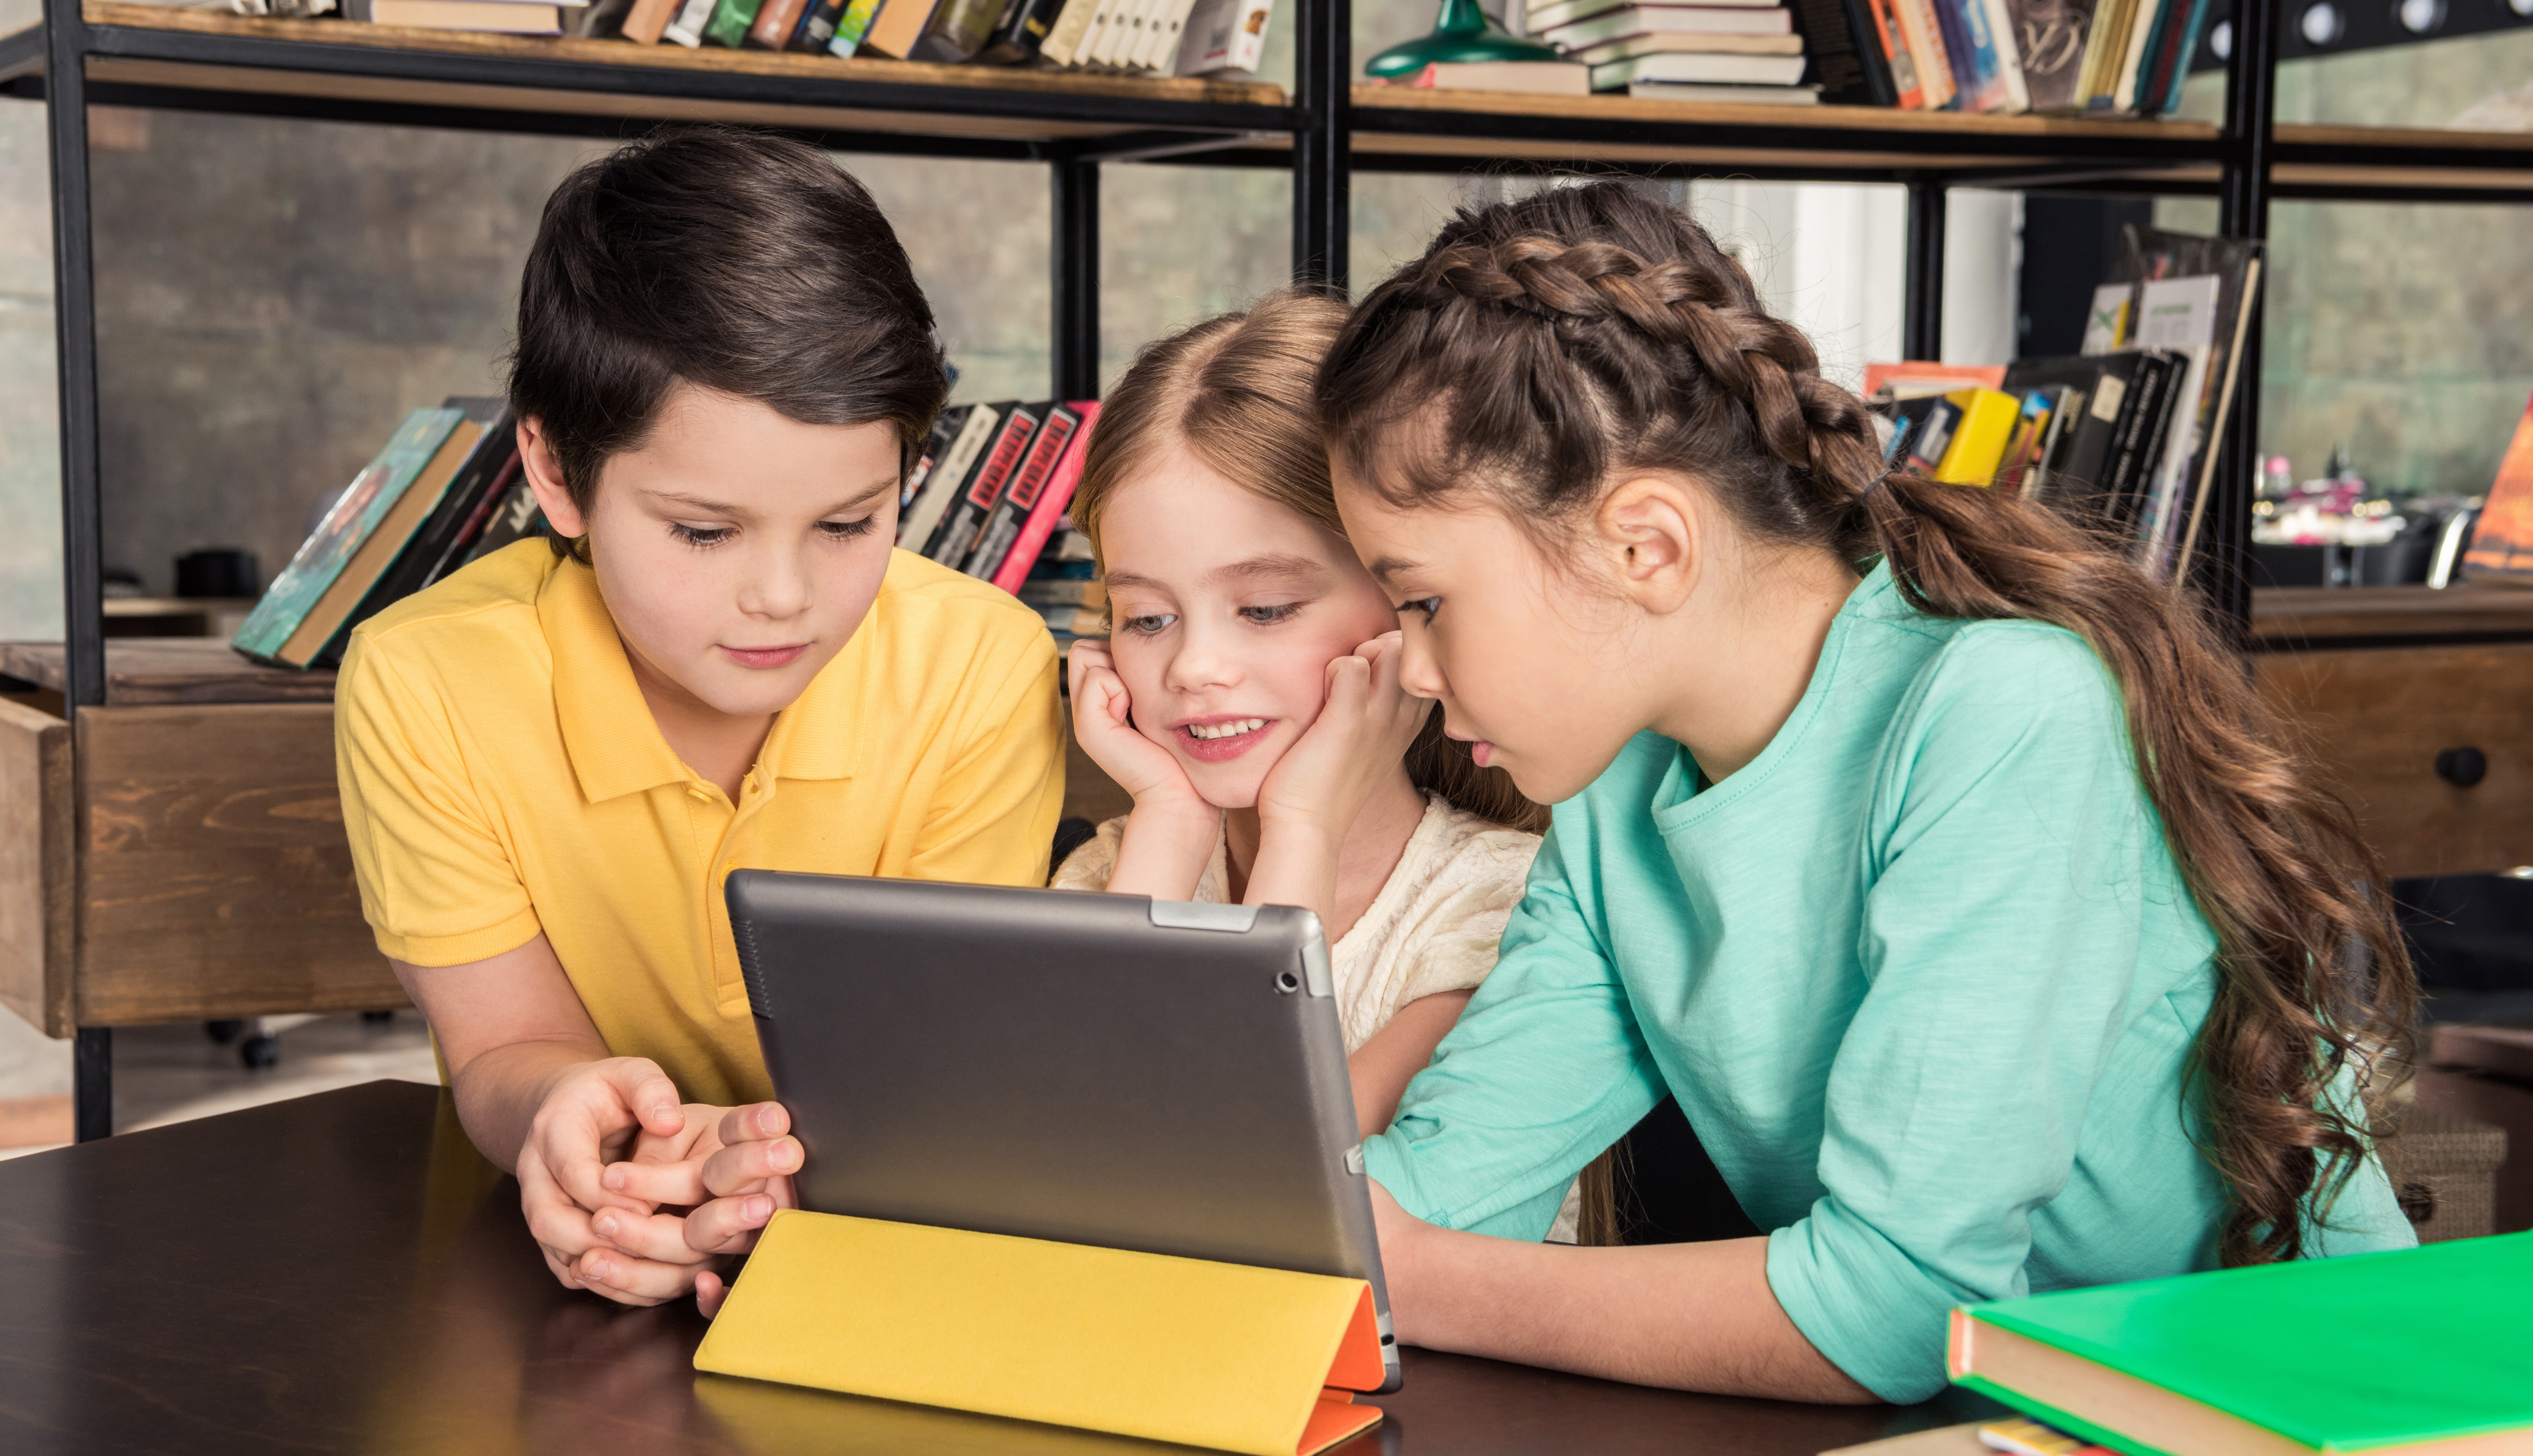 Concentrated schoolchildren using digital tablet in library